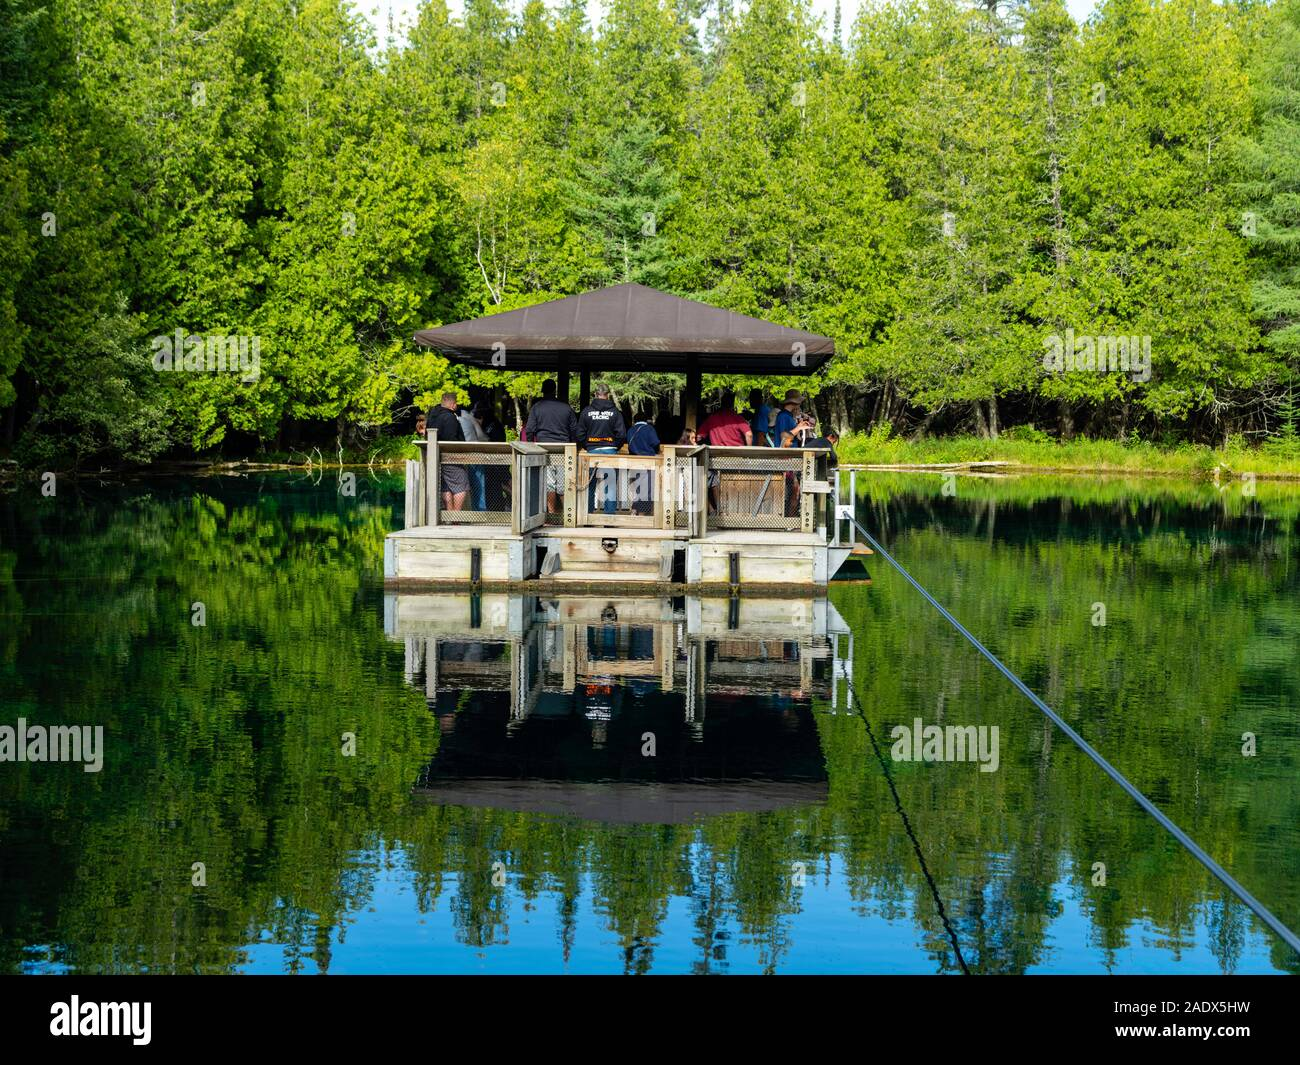 Tourists venture out on a barge to view trout in crystal clear water in Kitch-iti-kipi/Big Spring at Palms Book State Park, near Manistique, Michigan, Stock Photo